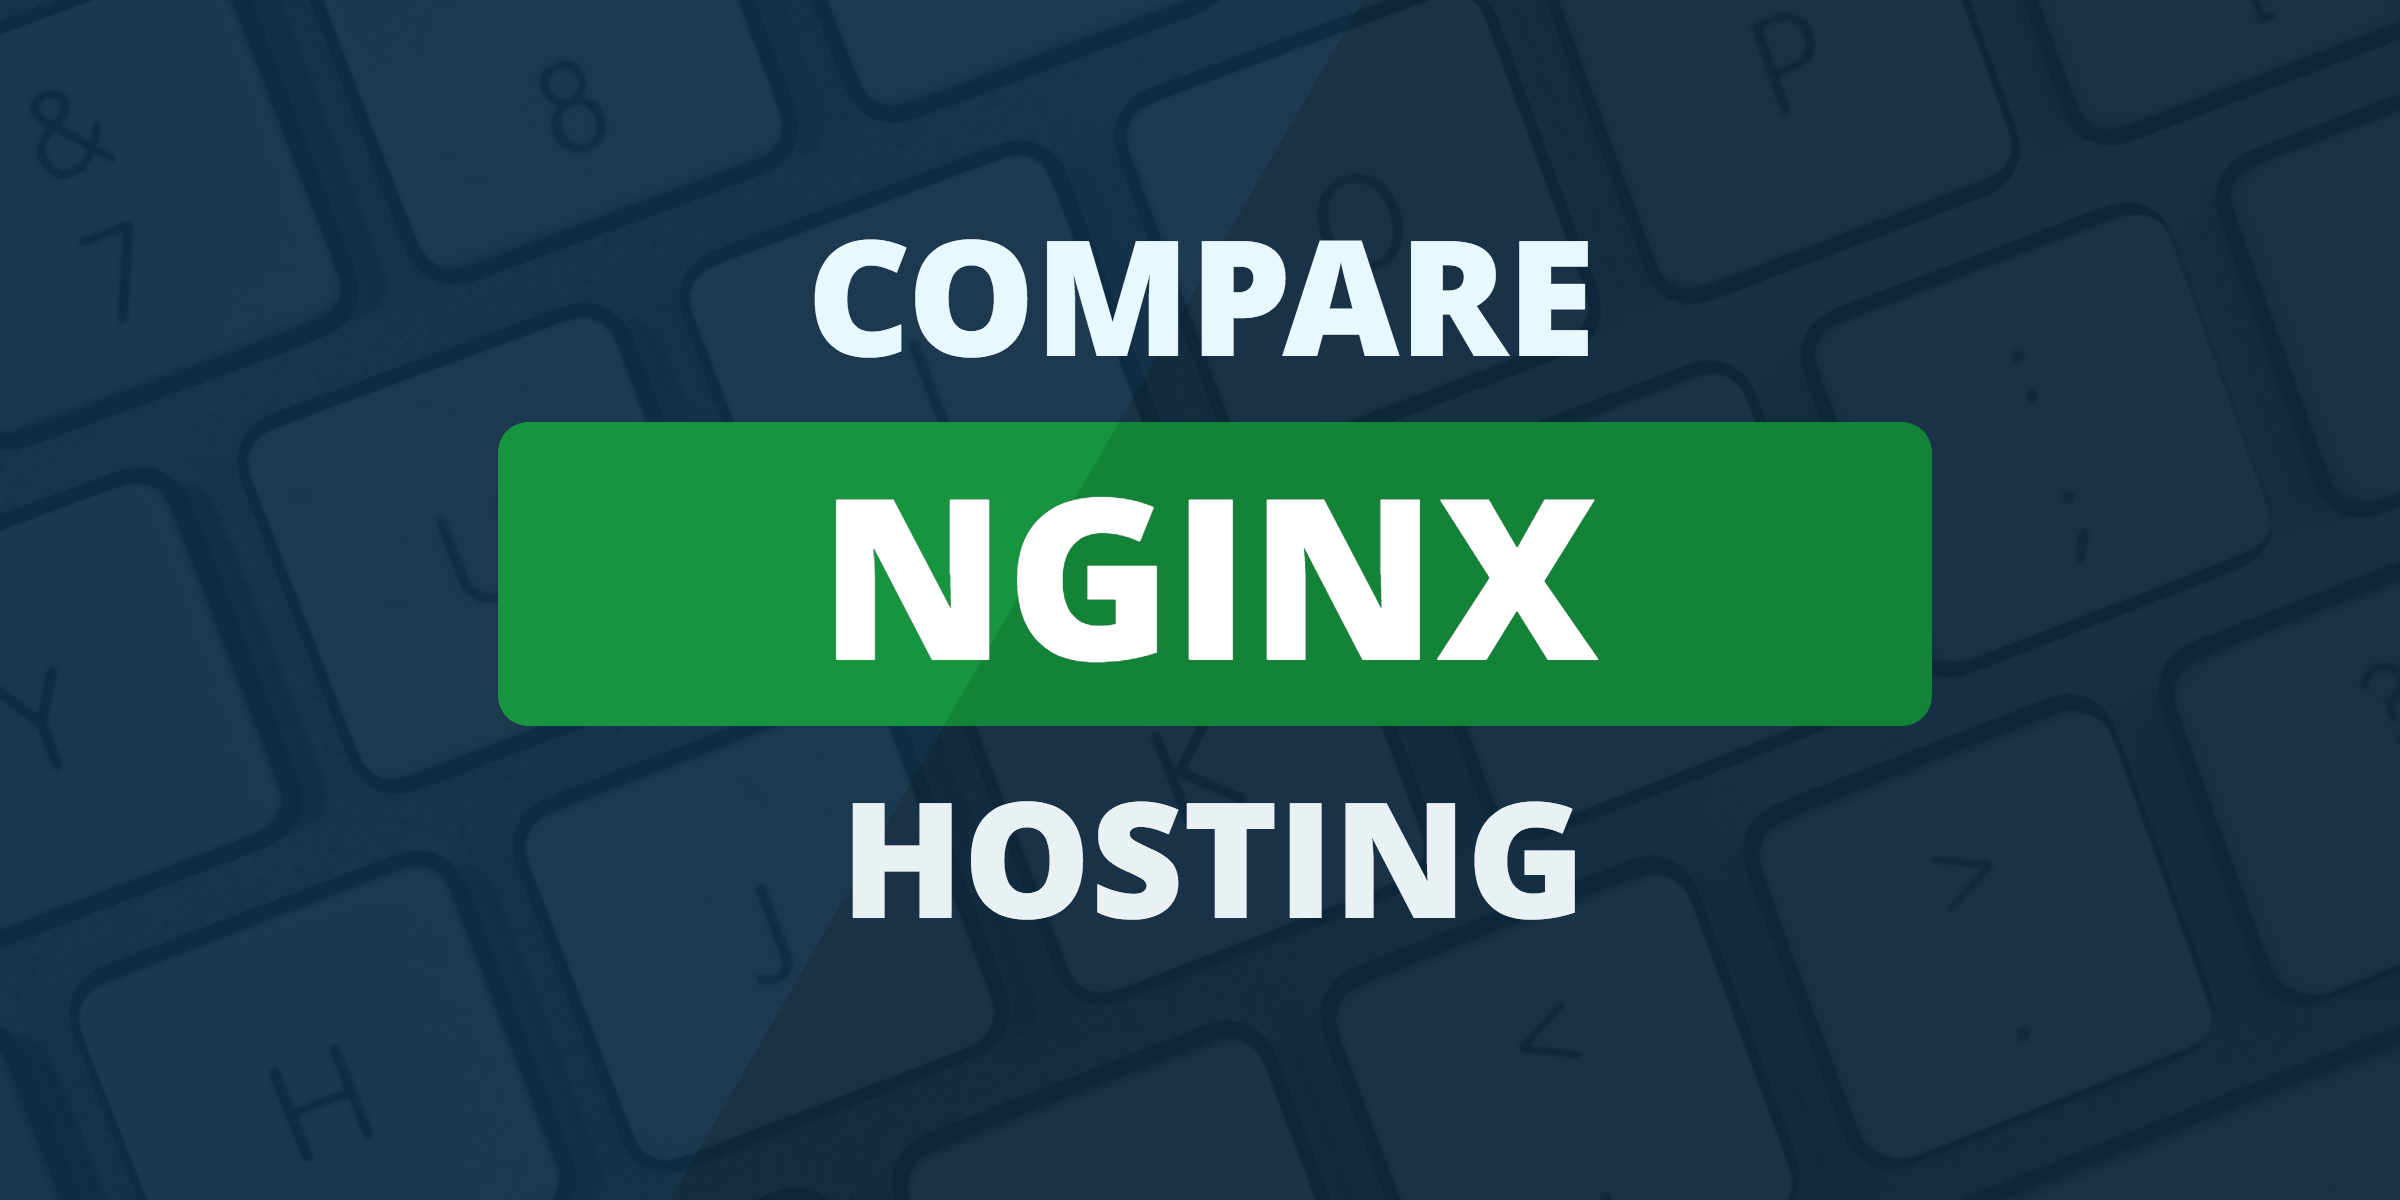 compare nginx hosting